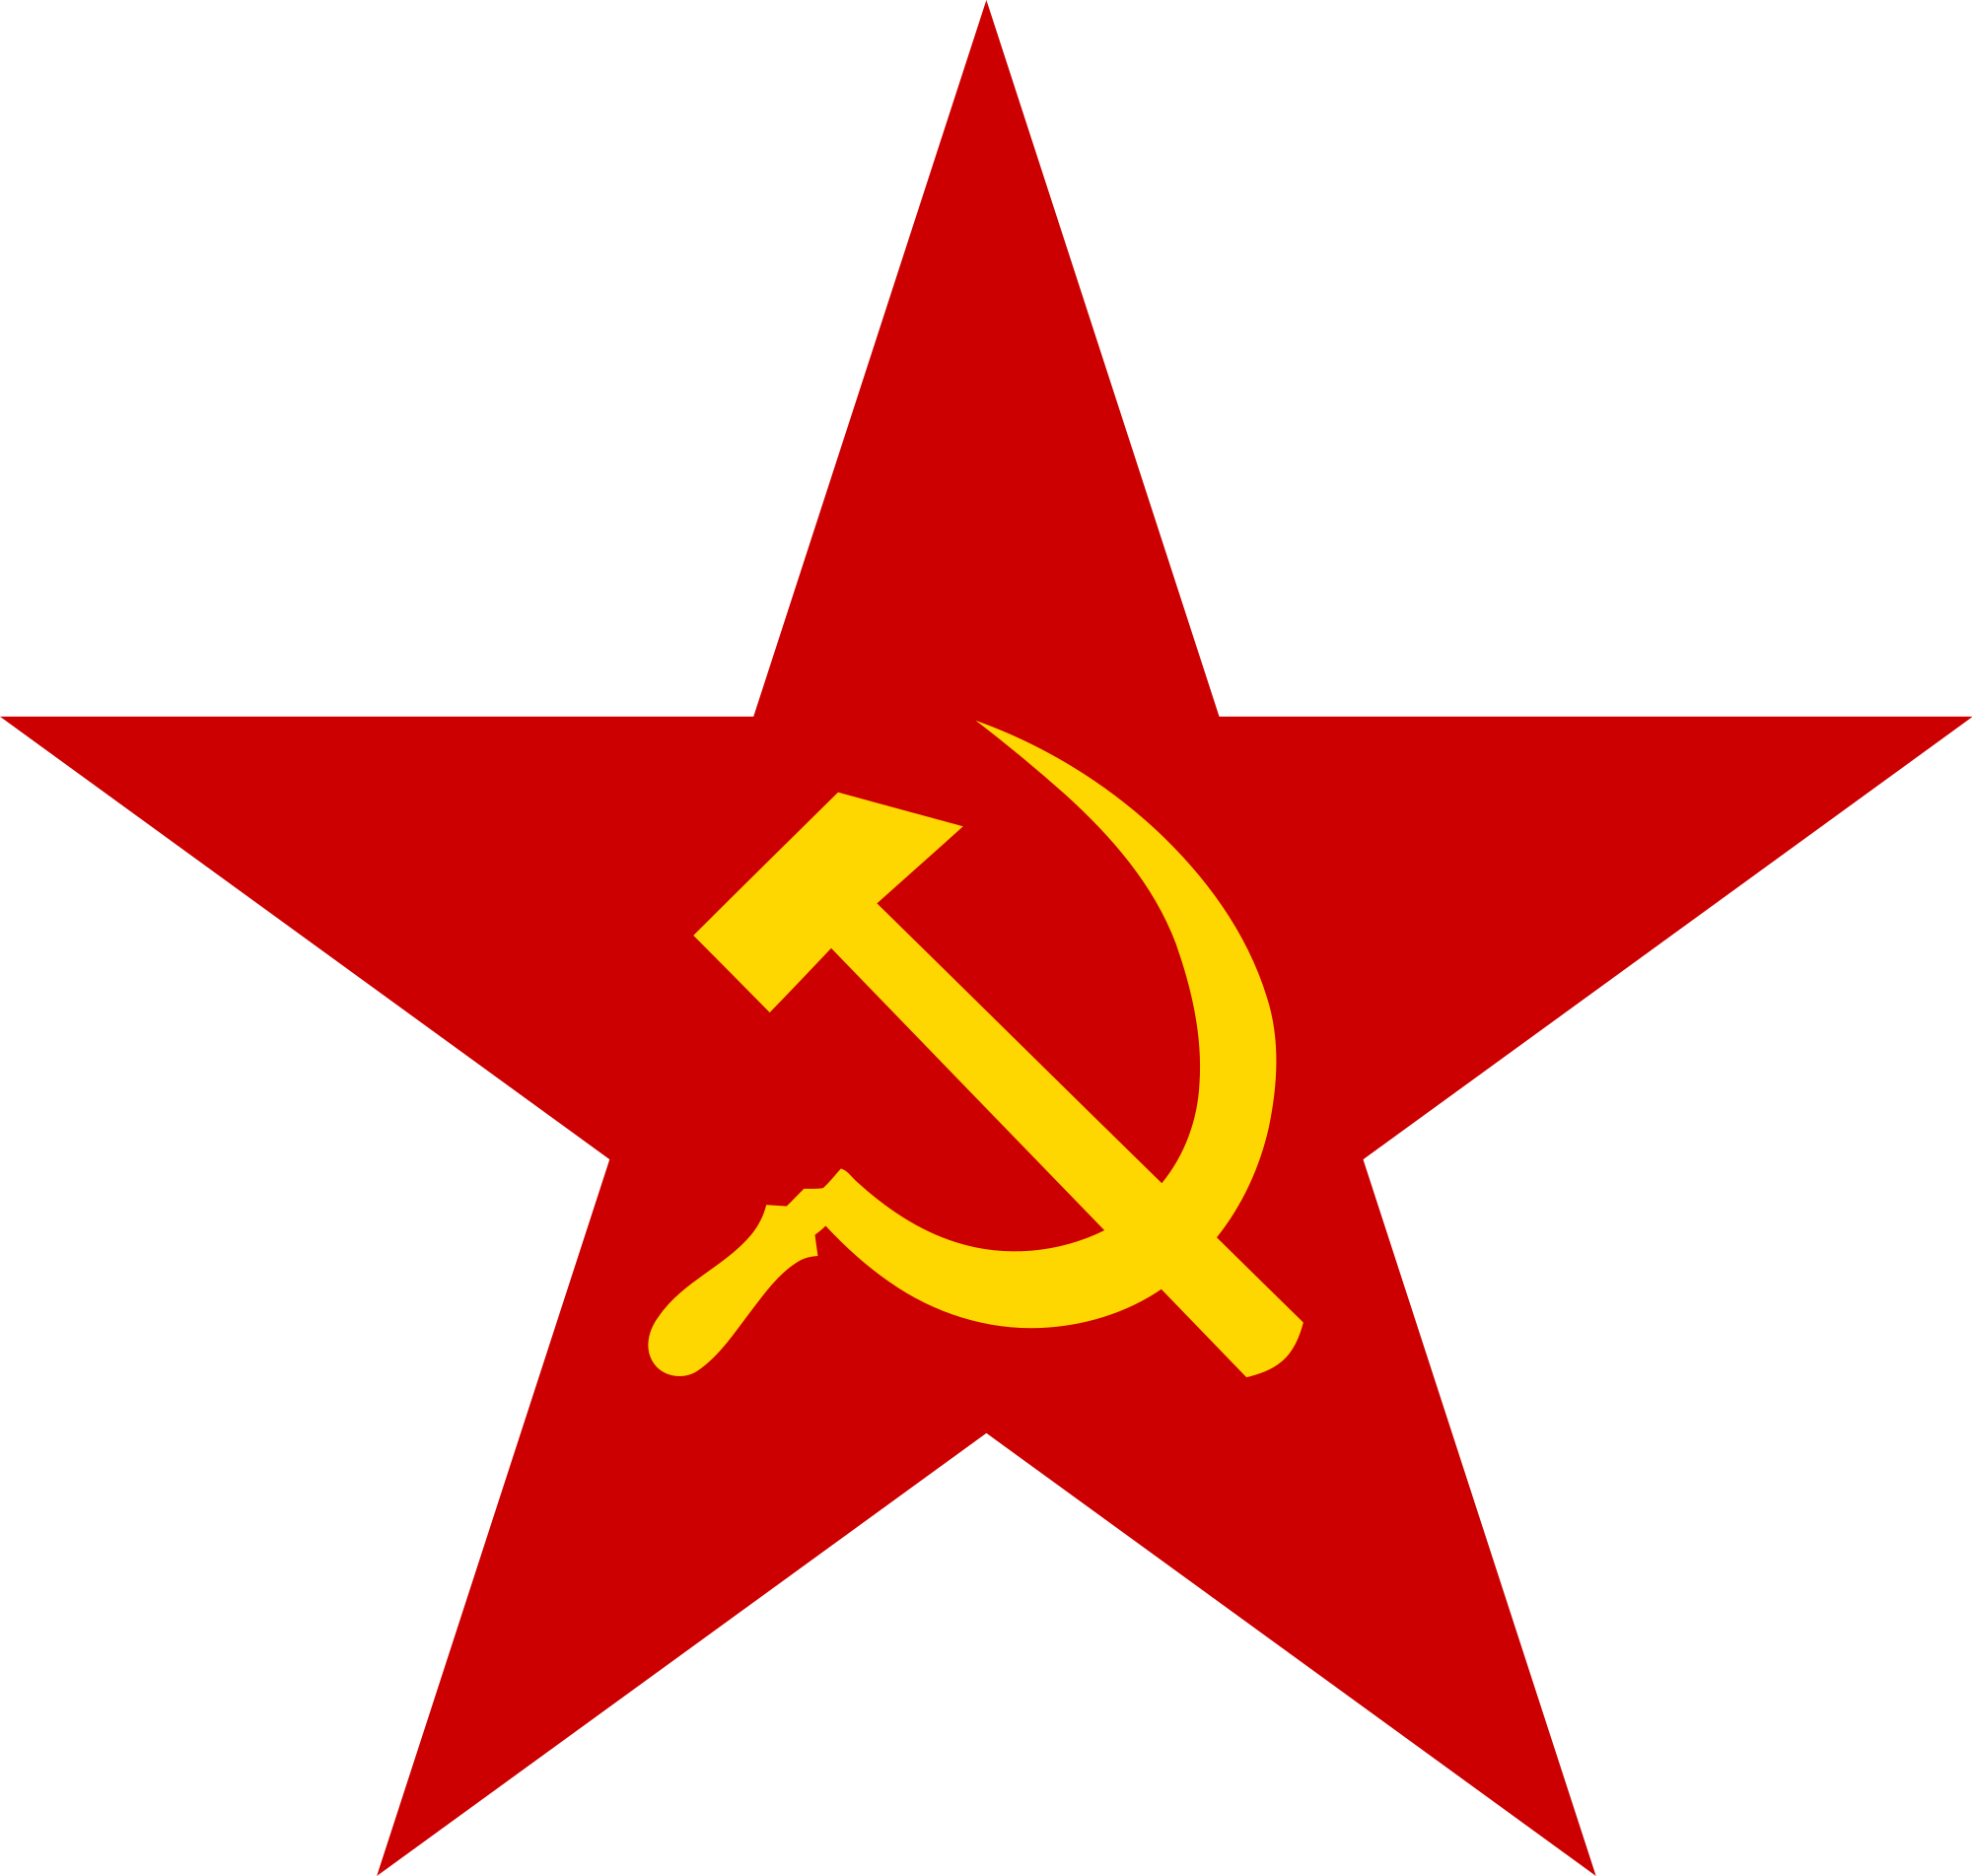 Military svg star. Red army wikipedia communist